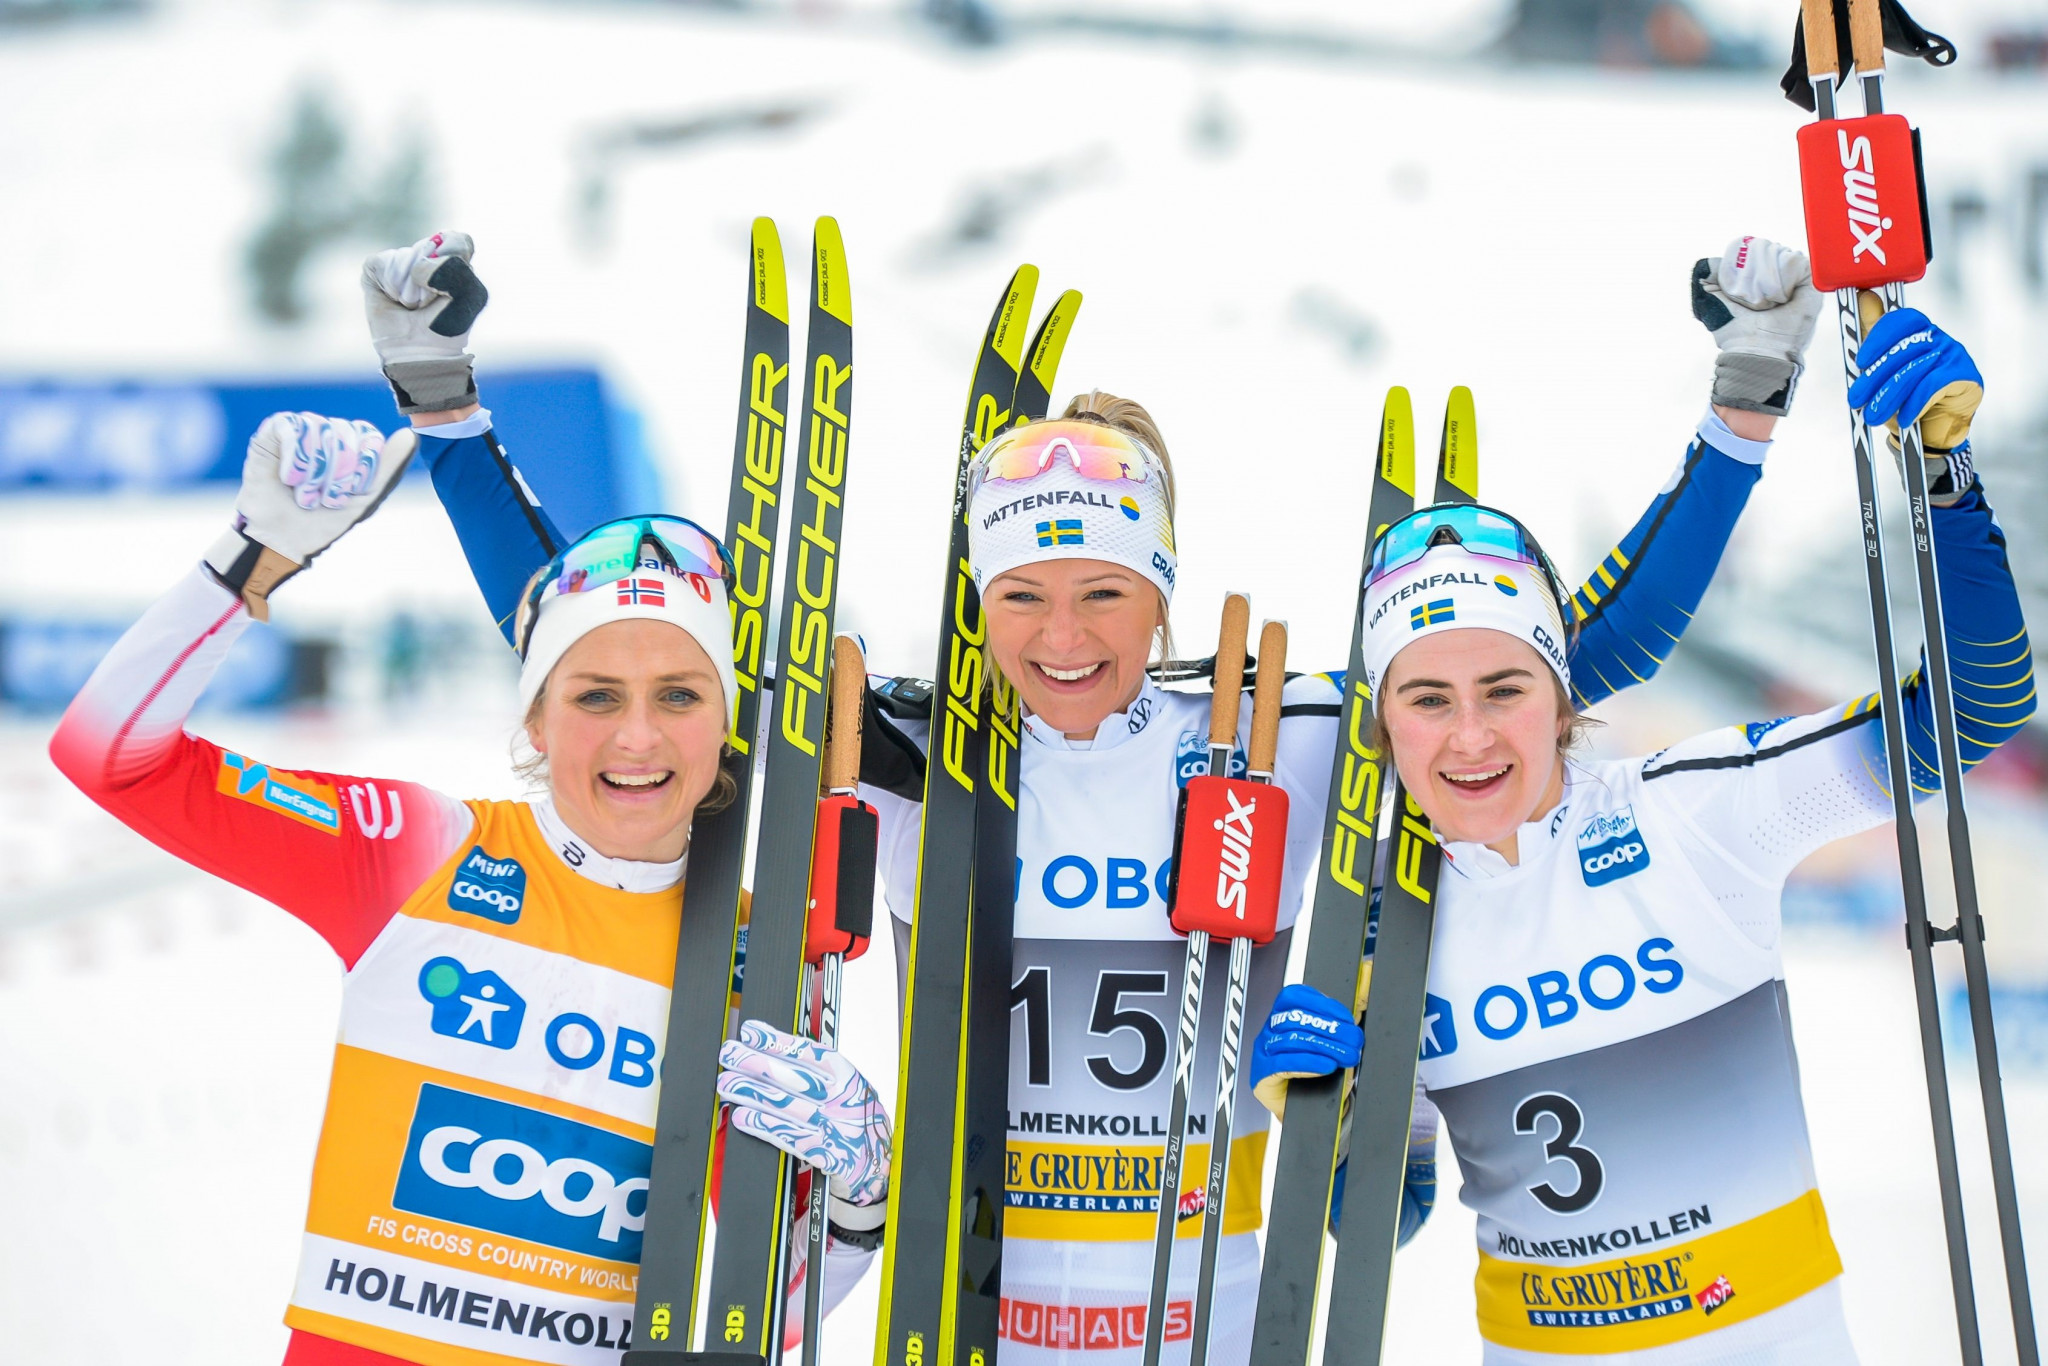 Karlsson claims maiden FIS Cross-Country World Cup win as Johaug secures overall title